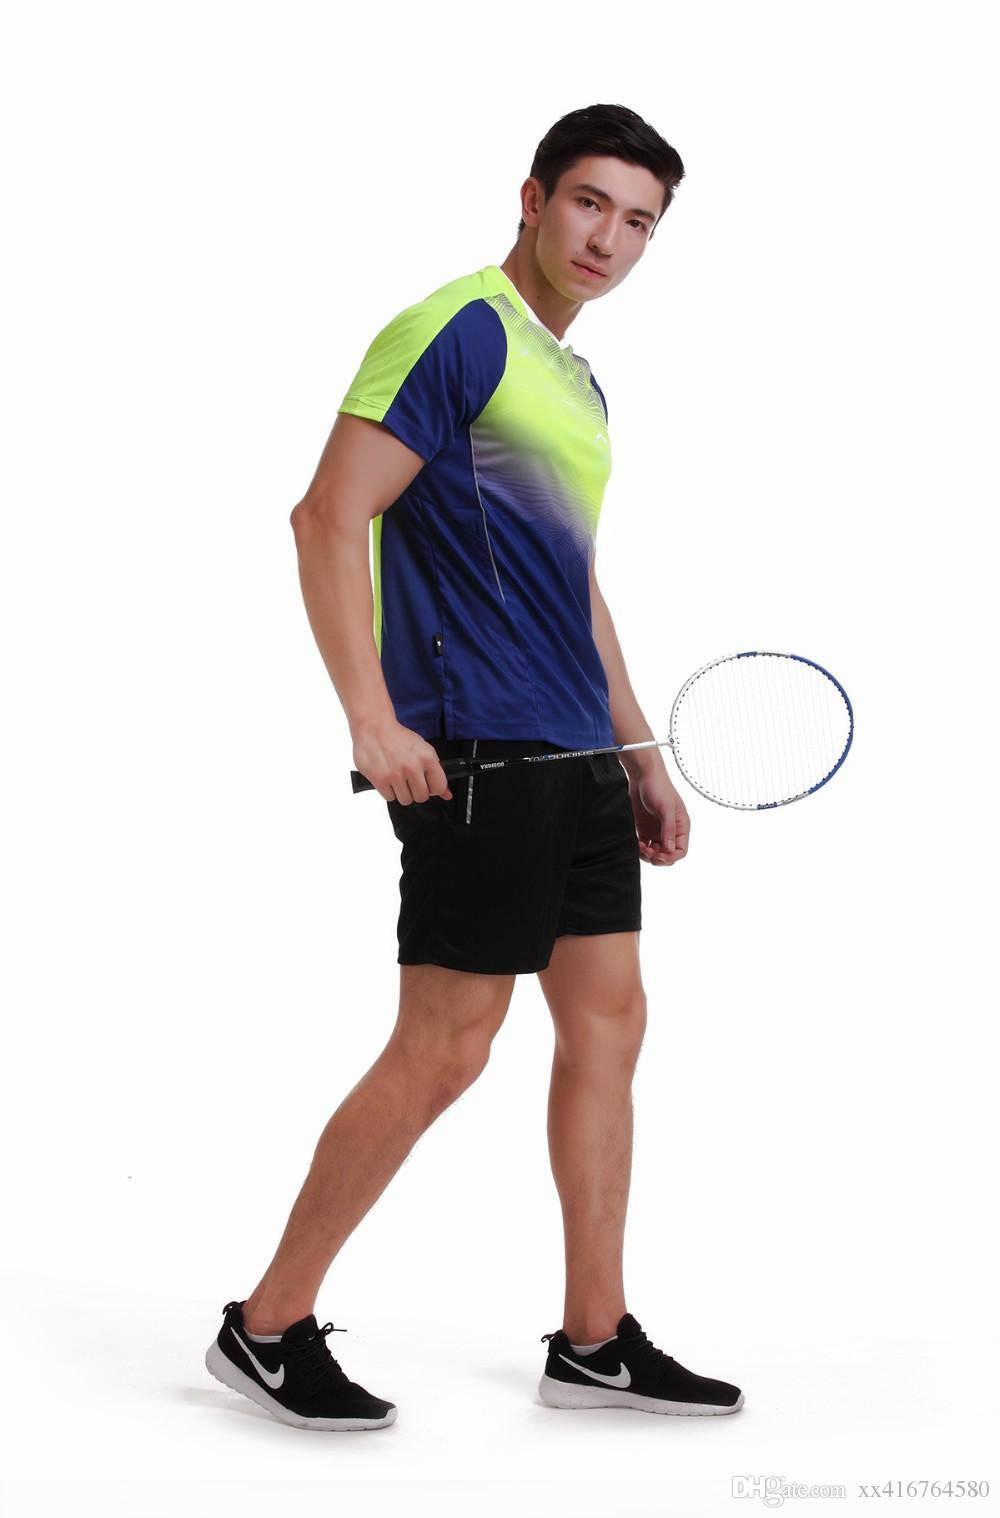 Sportswear sweat Quick Dry breathable badminton shirt , Women/Men table tennis clothes game running training Exercise Wear T Shirts